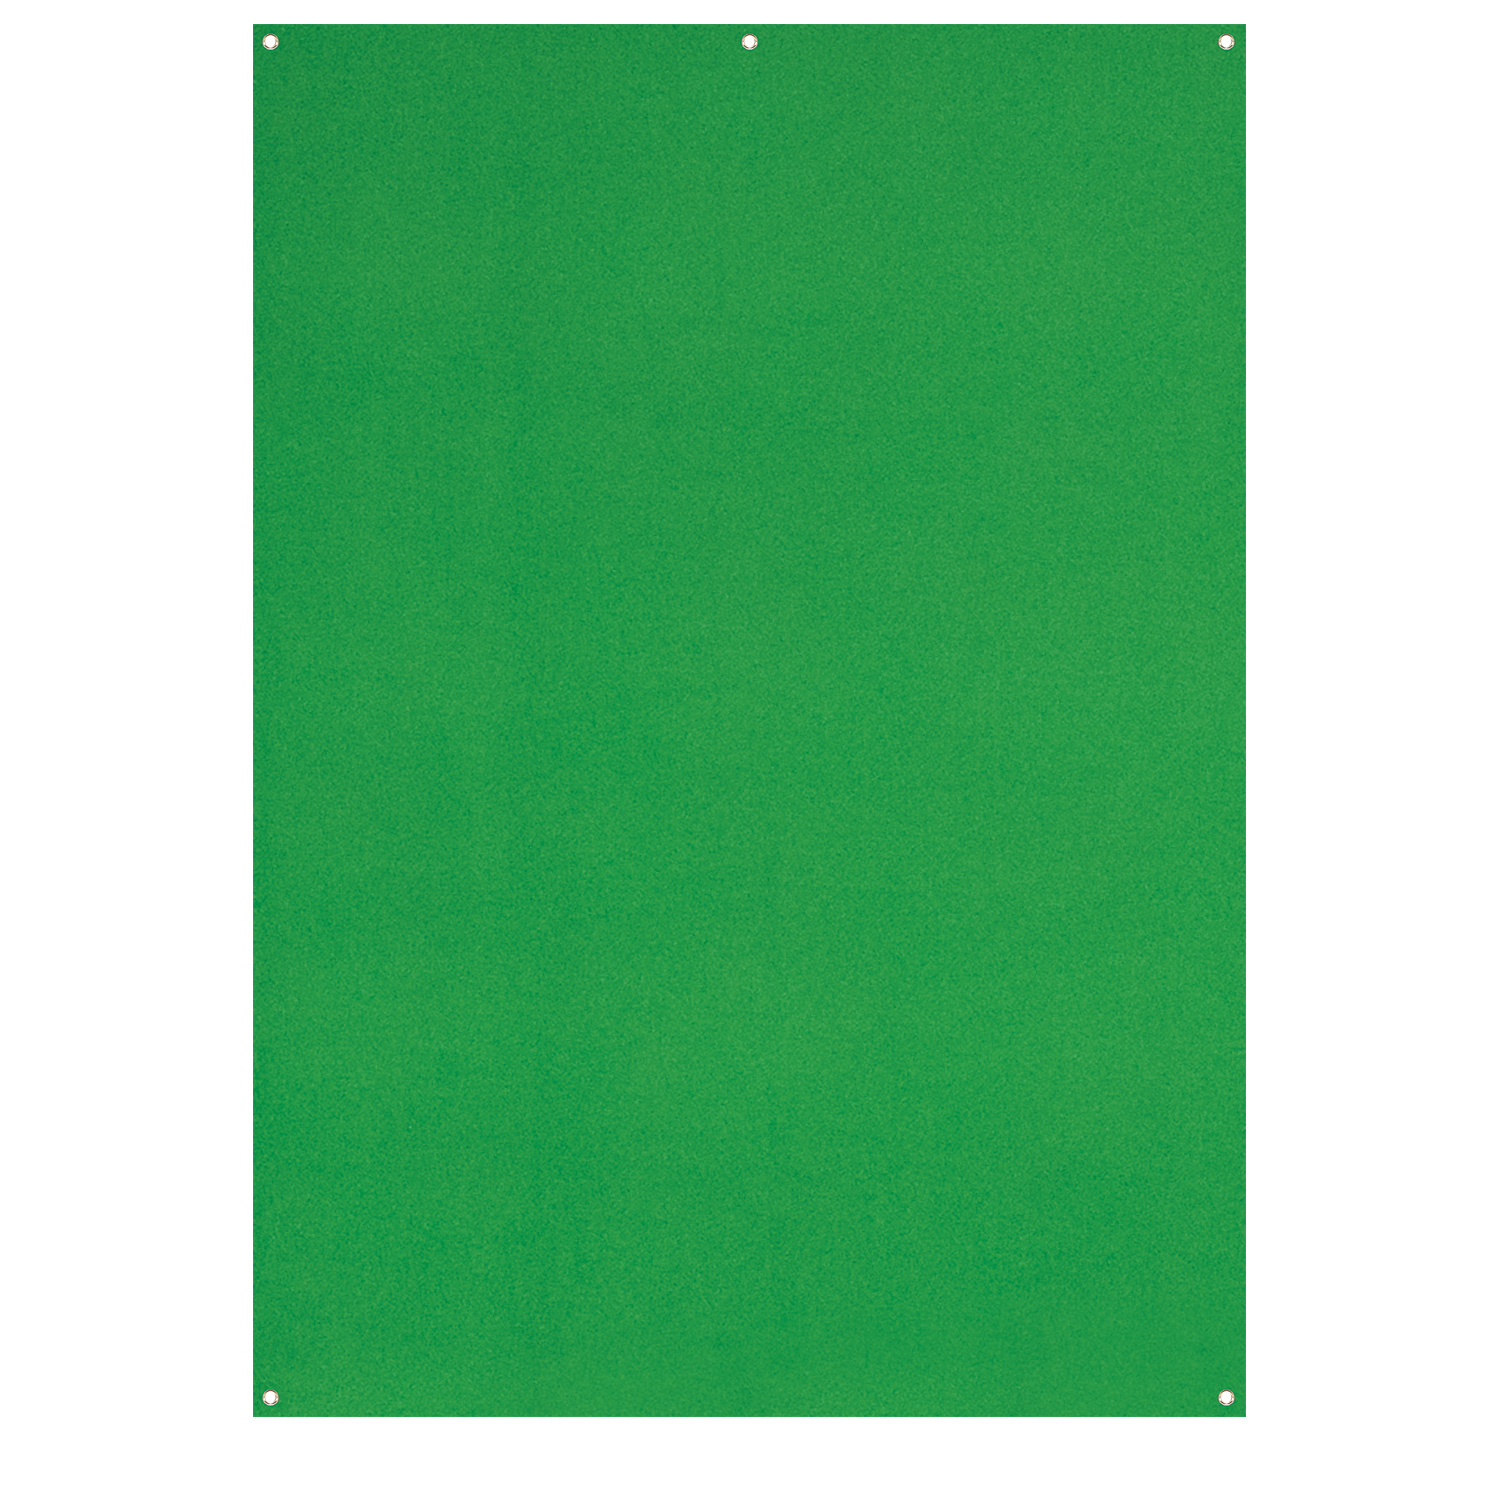 X-Drop Wrinkle-Resistant Backdrop - Chroma-Key Green Screen (5' x 7')